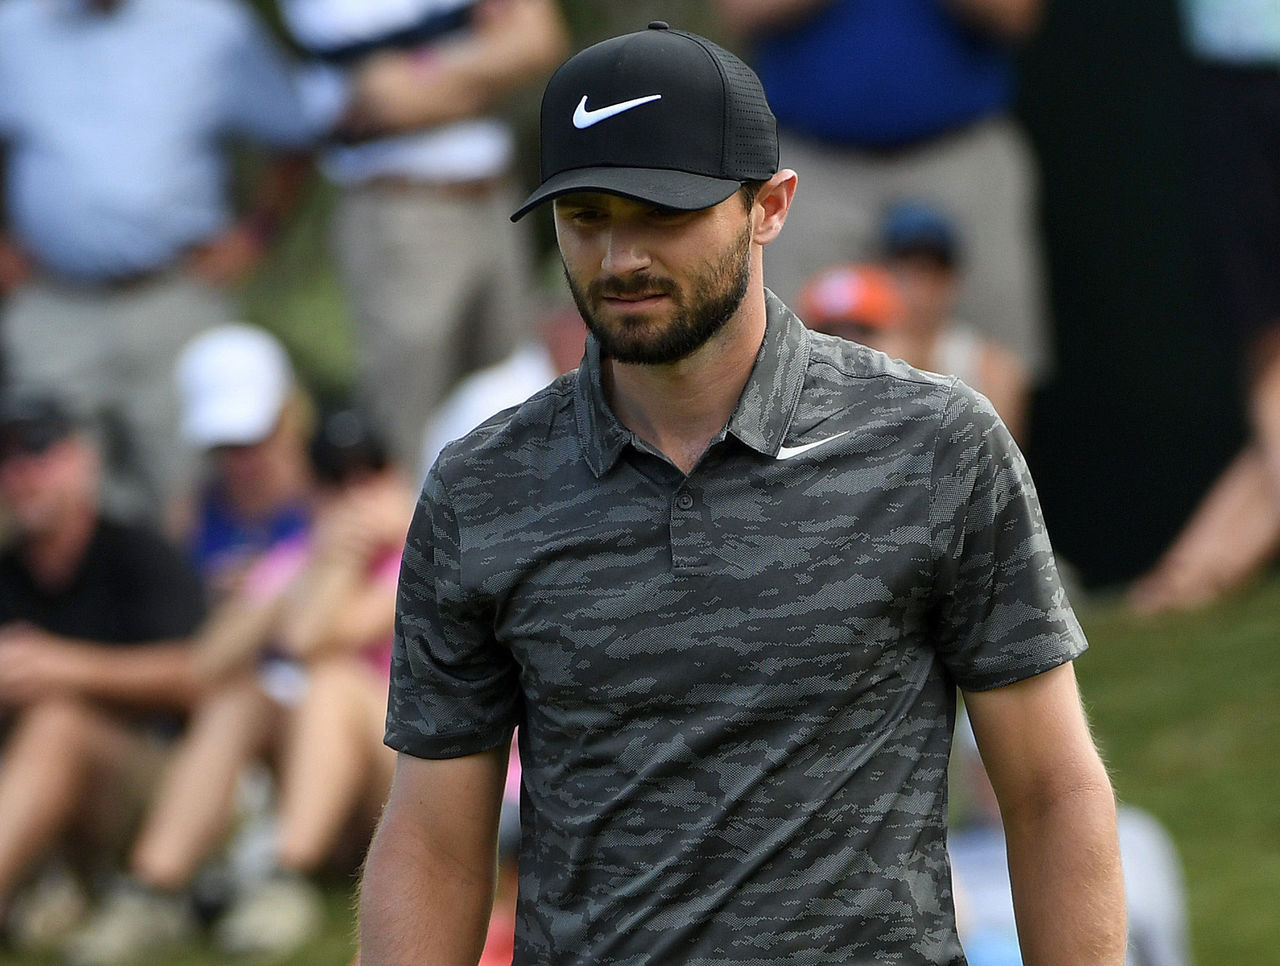 Cropped 2017 05 13t224239z 1105120321 nocid rtrmadp 3 pga the players championship third round